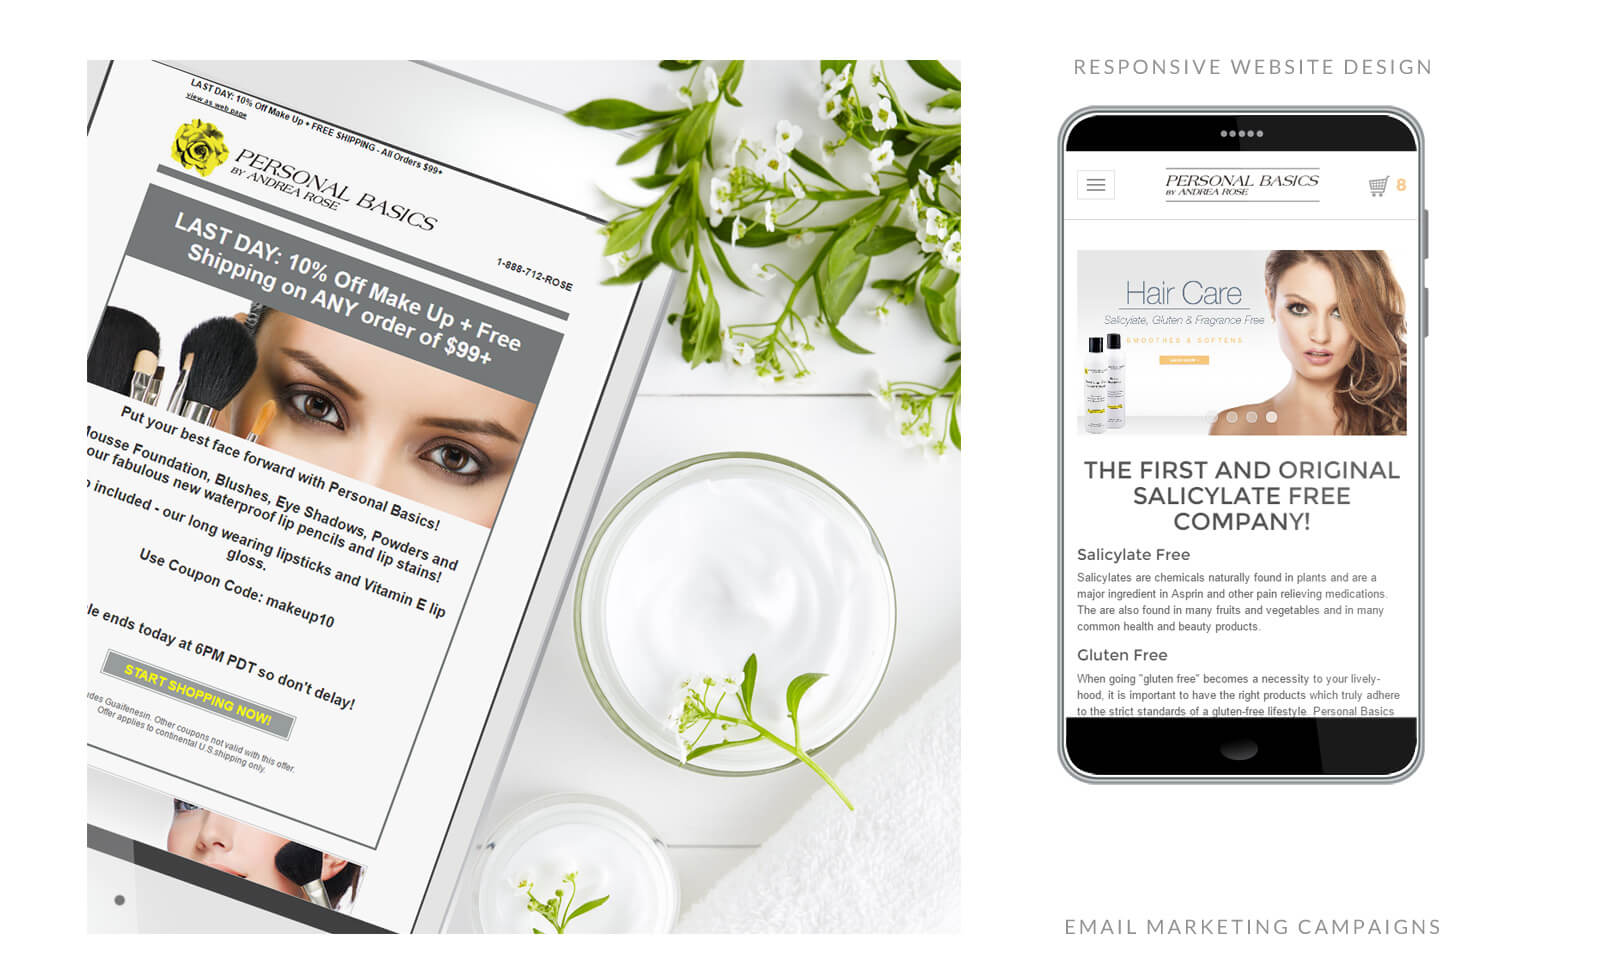 Services Online Skin Care Marketing